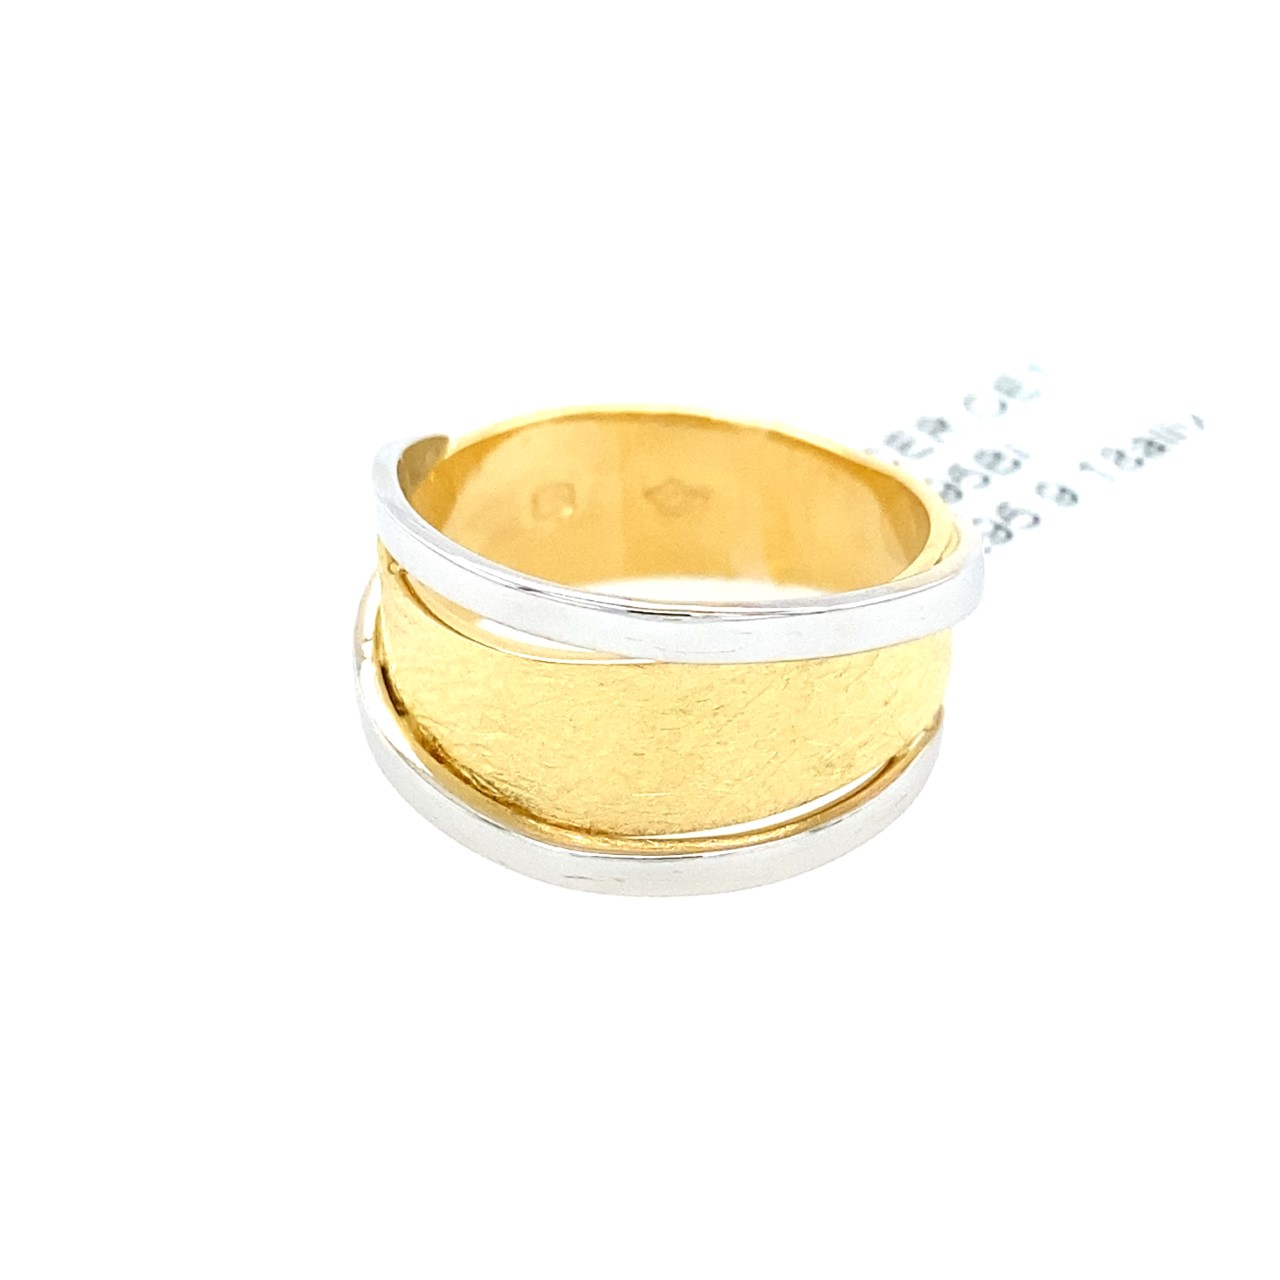 bicolored Yellow and White Gold ring